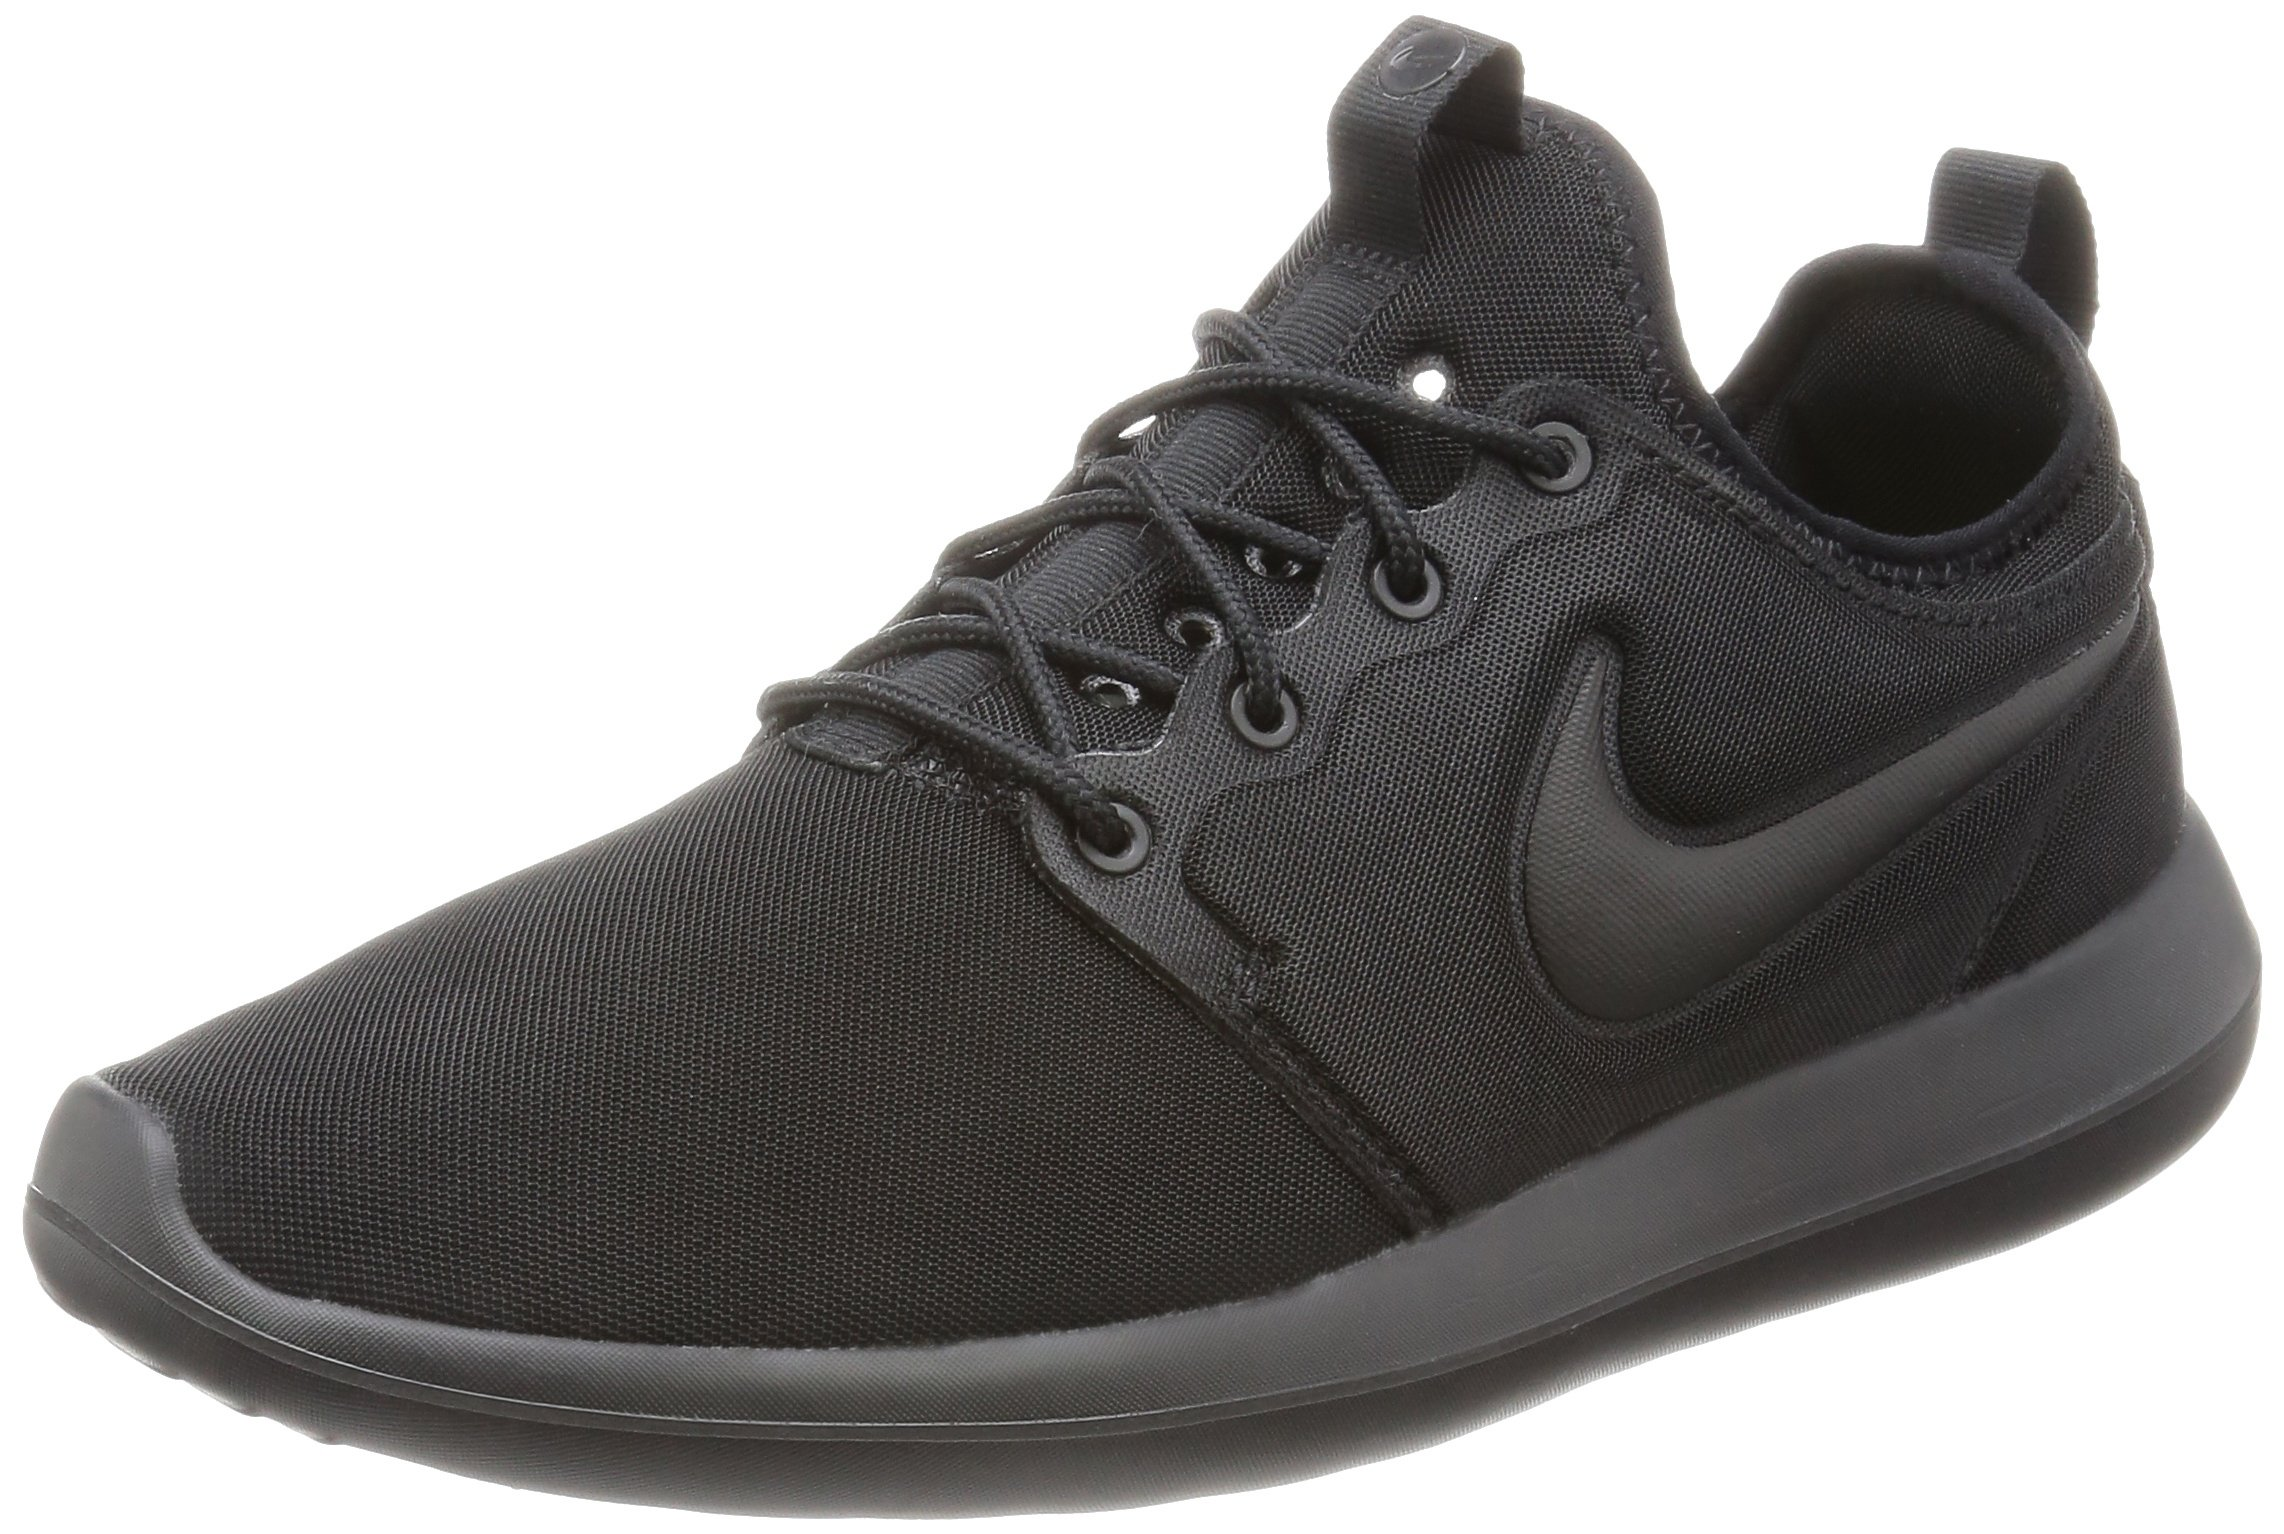 90c4c2384bed Galleon - Nike Mens Roshe Two Running Shoes Black Black 844656-001 Size 10